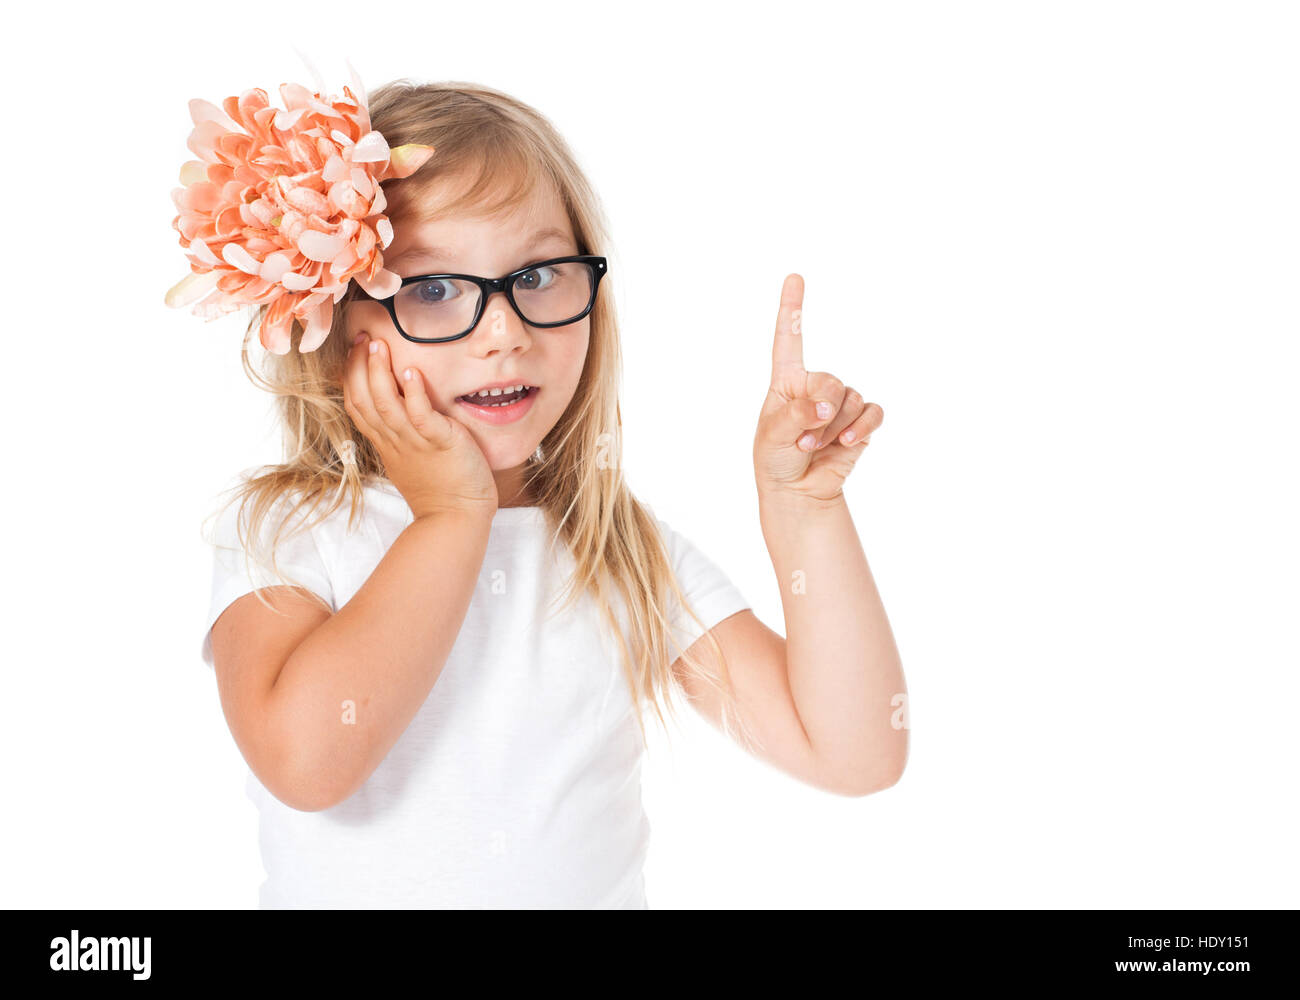 girl shows something a finger, has an idea, he says, whispers, advises - Stock Image